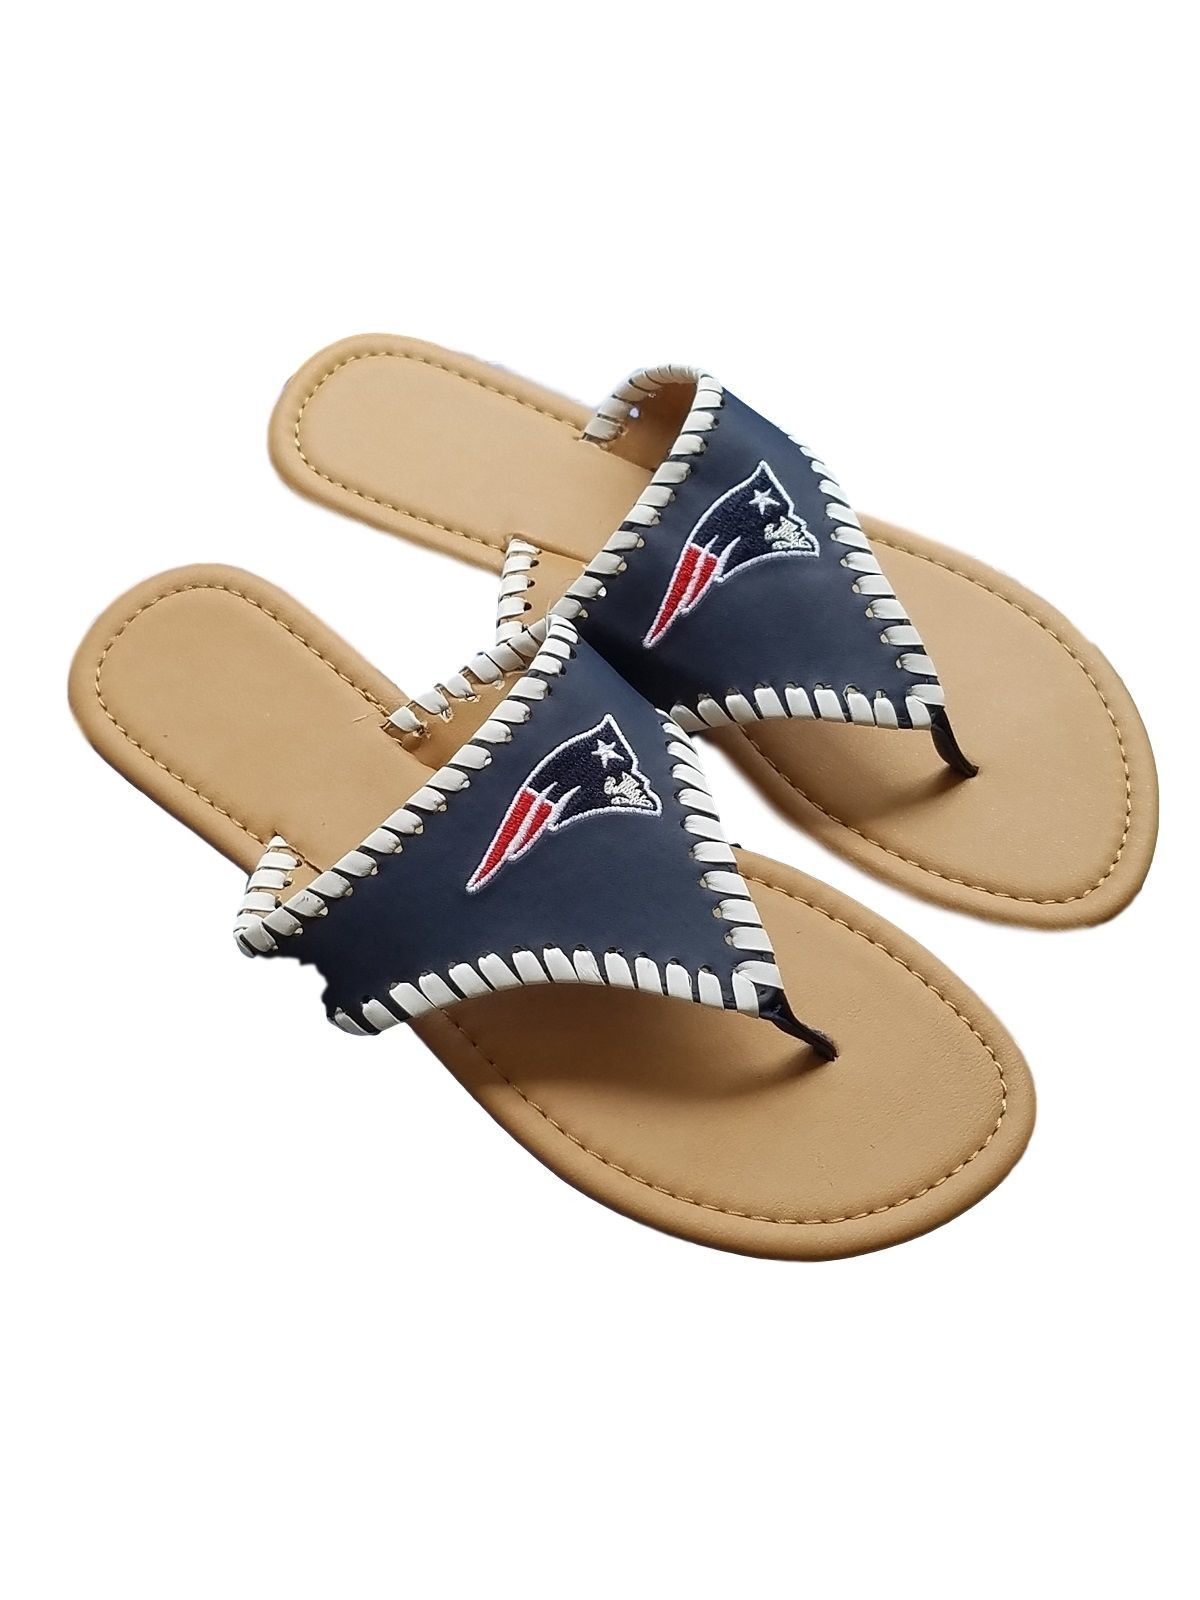 sports shoes 330b4 03d84 NFL New England Patriots Women s High End Embroidered Spring Sandals Slides